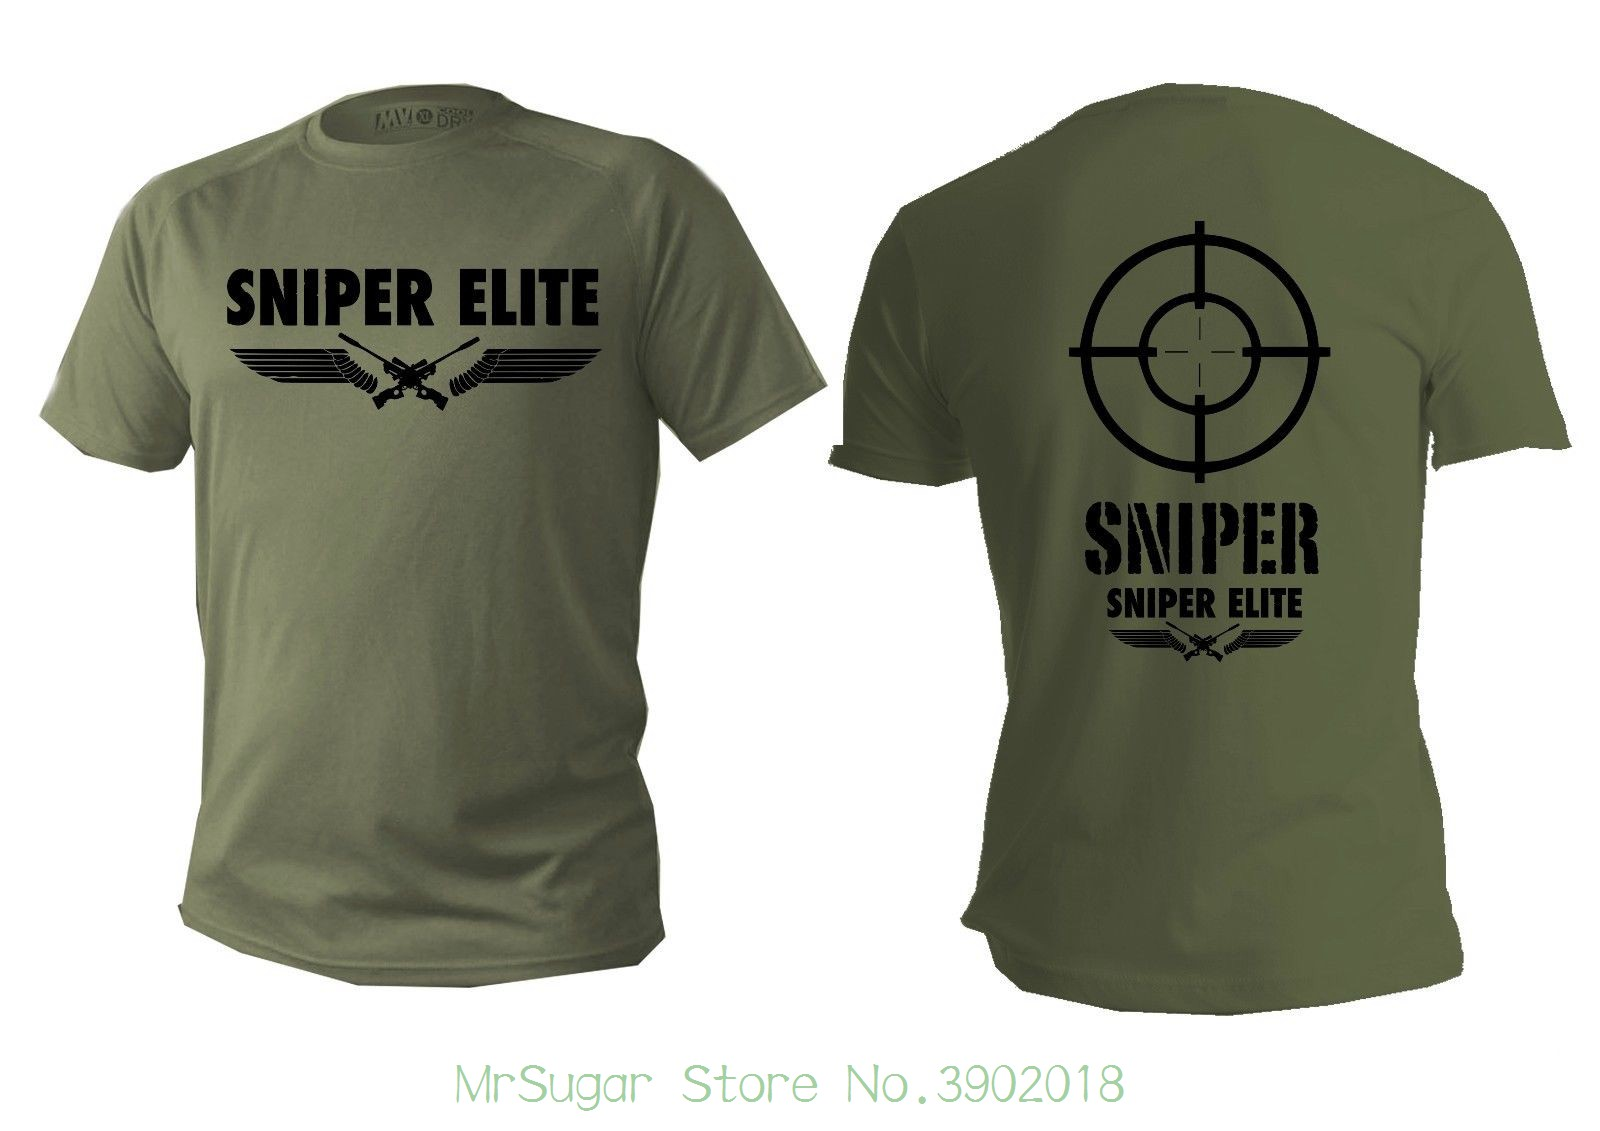 T Shirt Mens Dry Fit Short Sleeve Green Olive Sniper Army Military Snipers Army Mens T Shirts 2018 Fashion